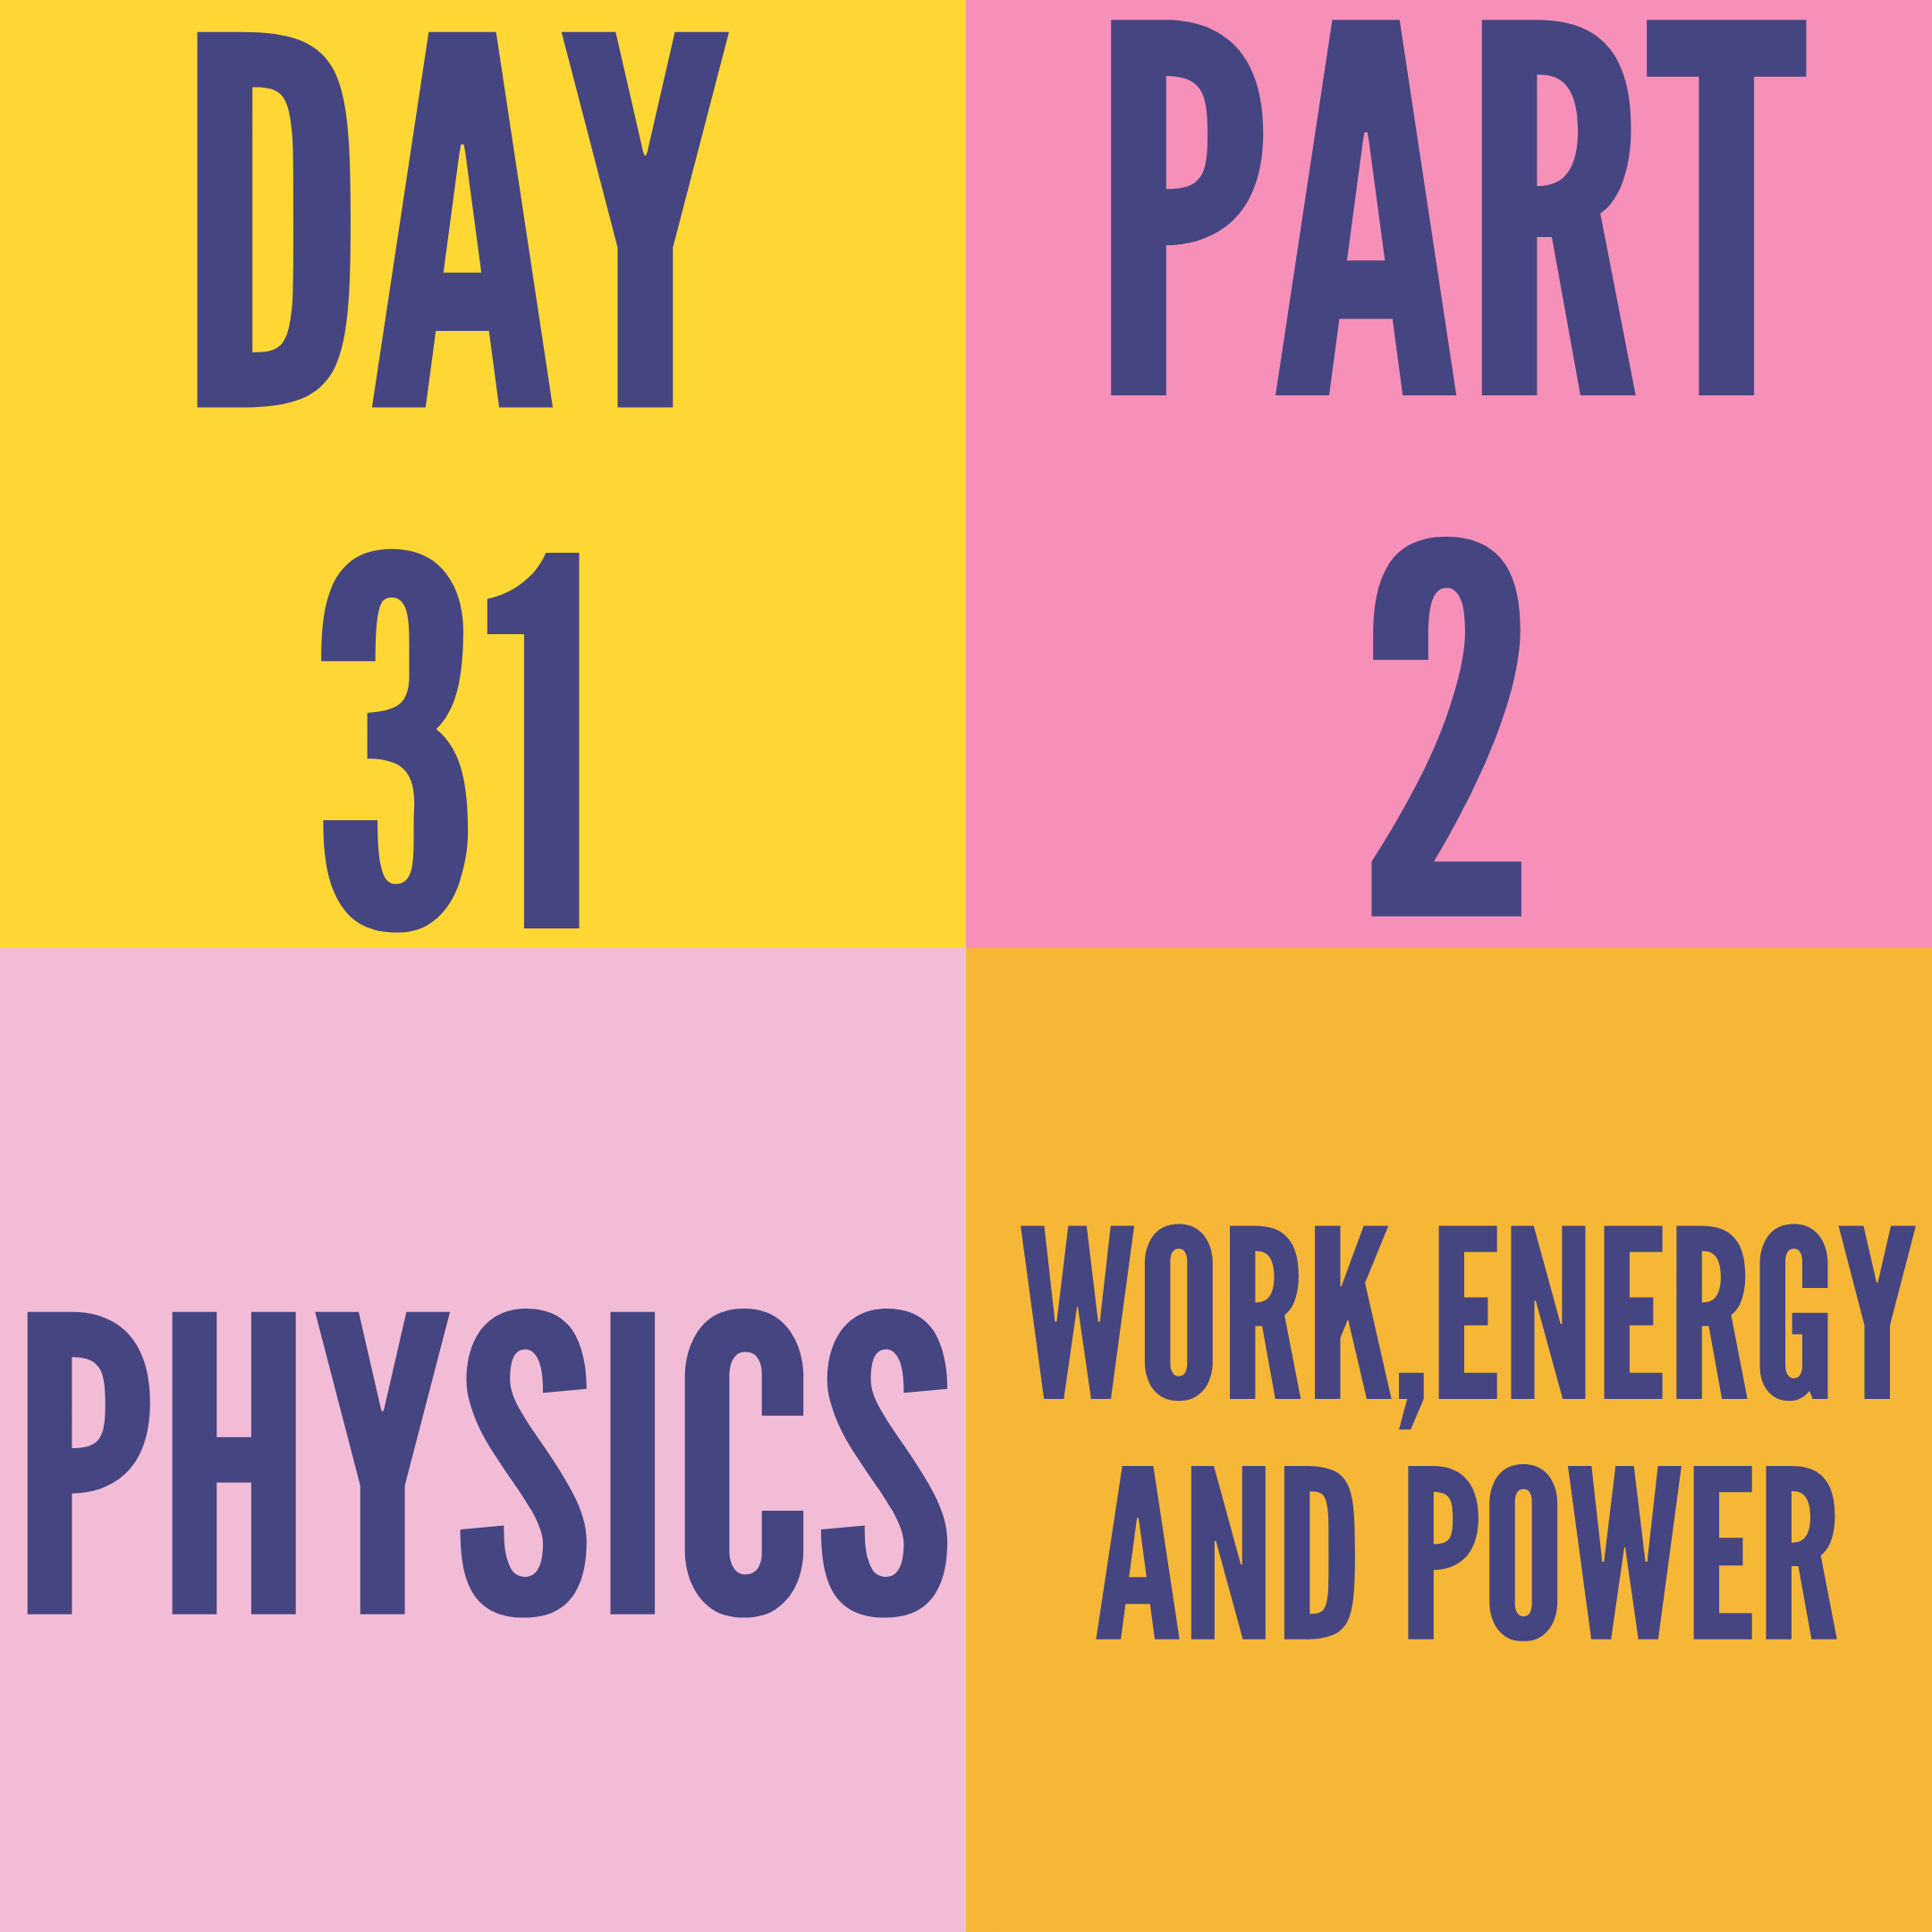 DAY-31 PART-2 WORK,ENERGY AND POWER